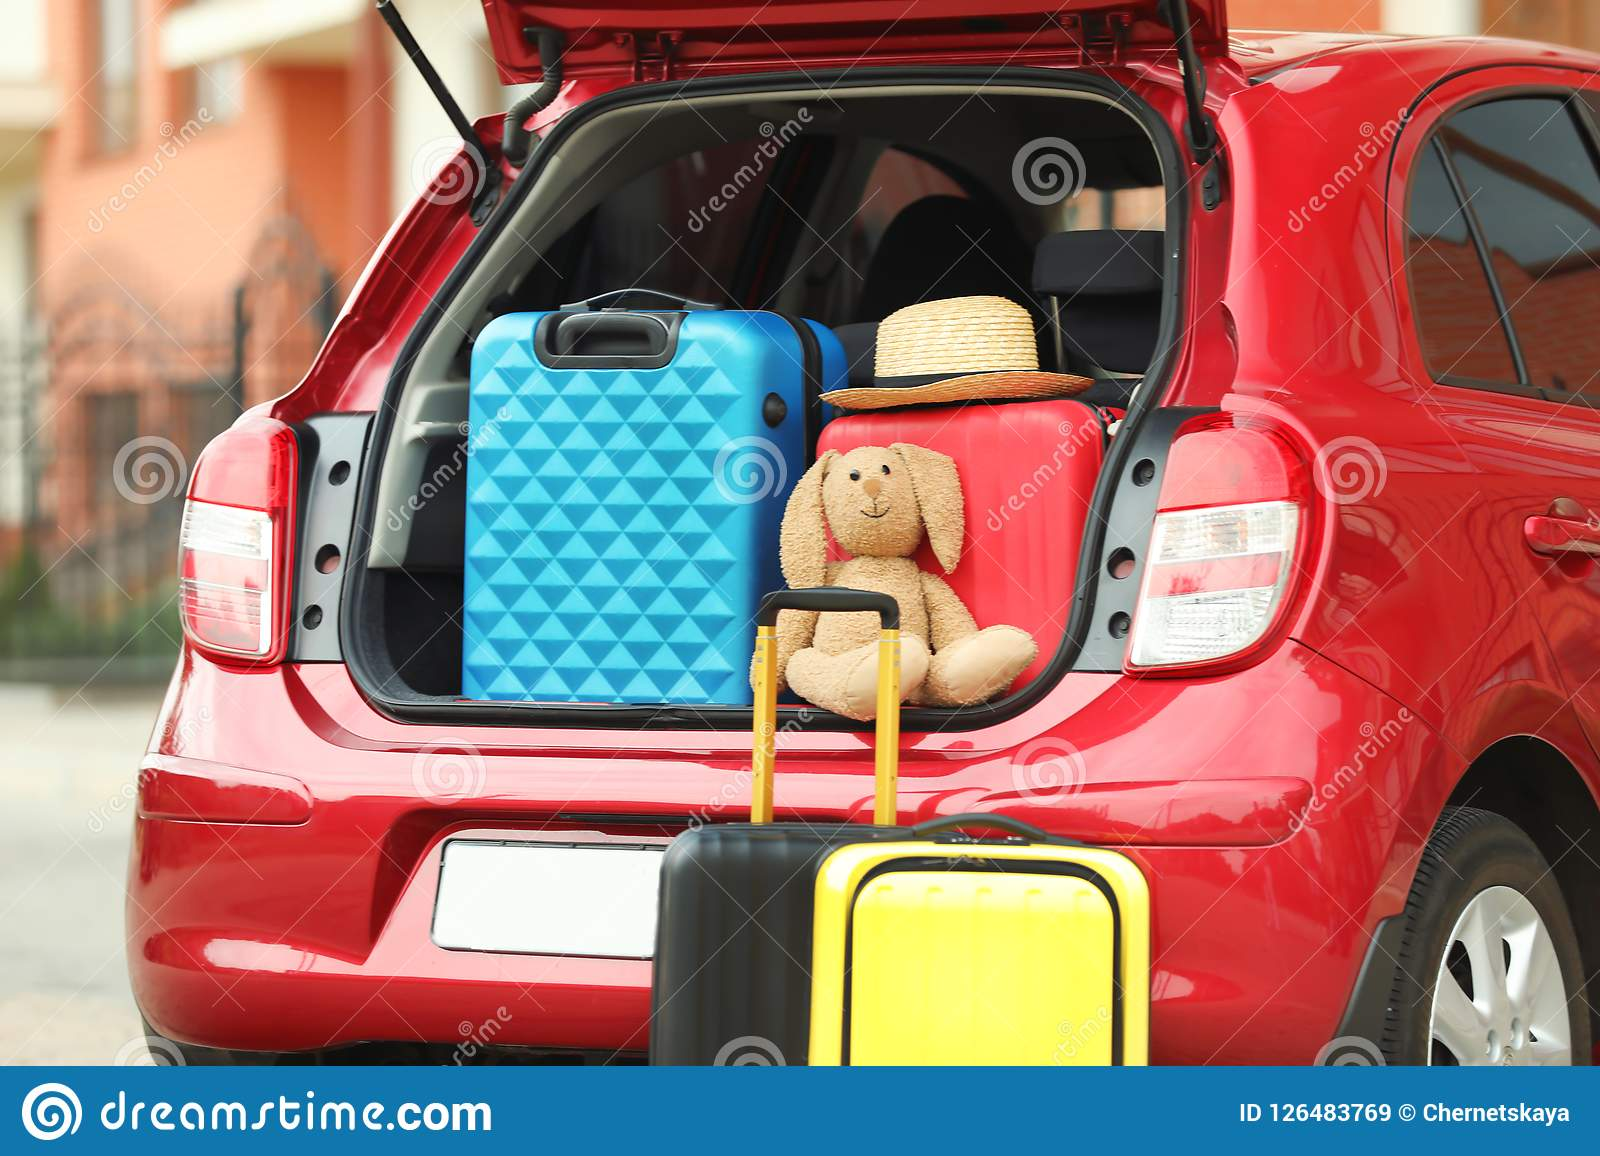 Suitcases, toy and hat in car trunk